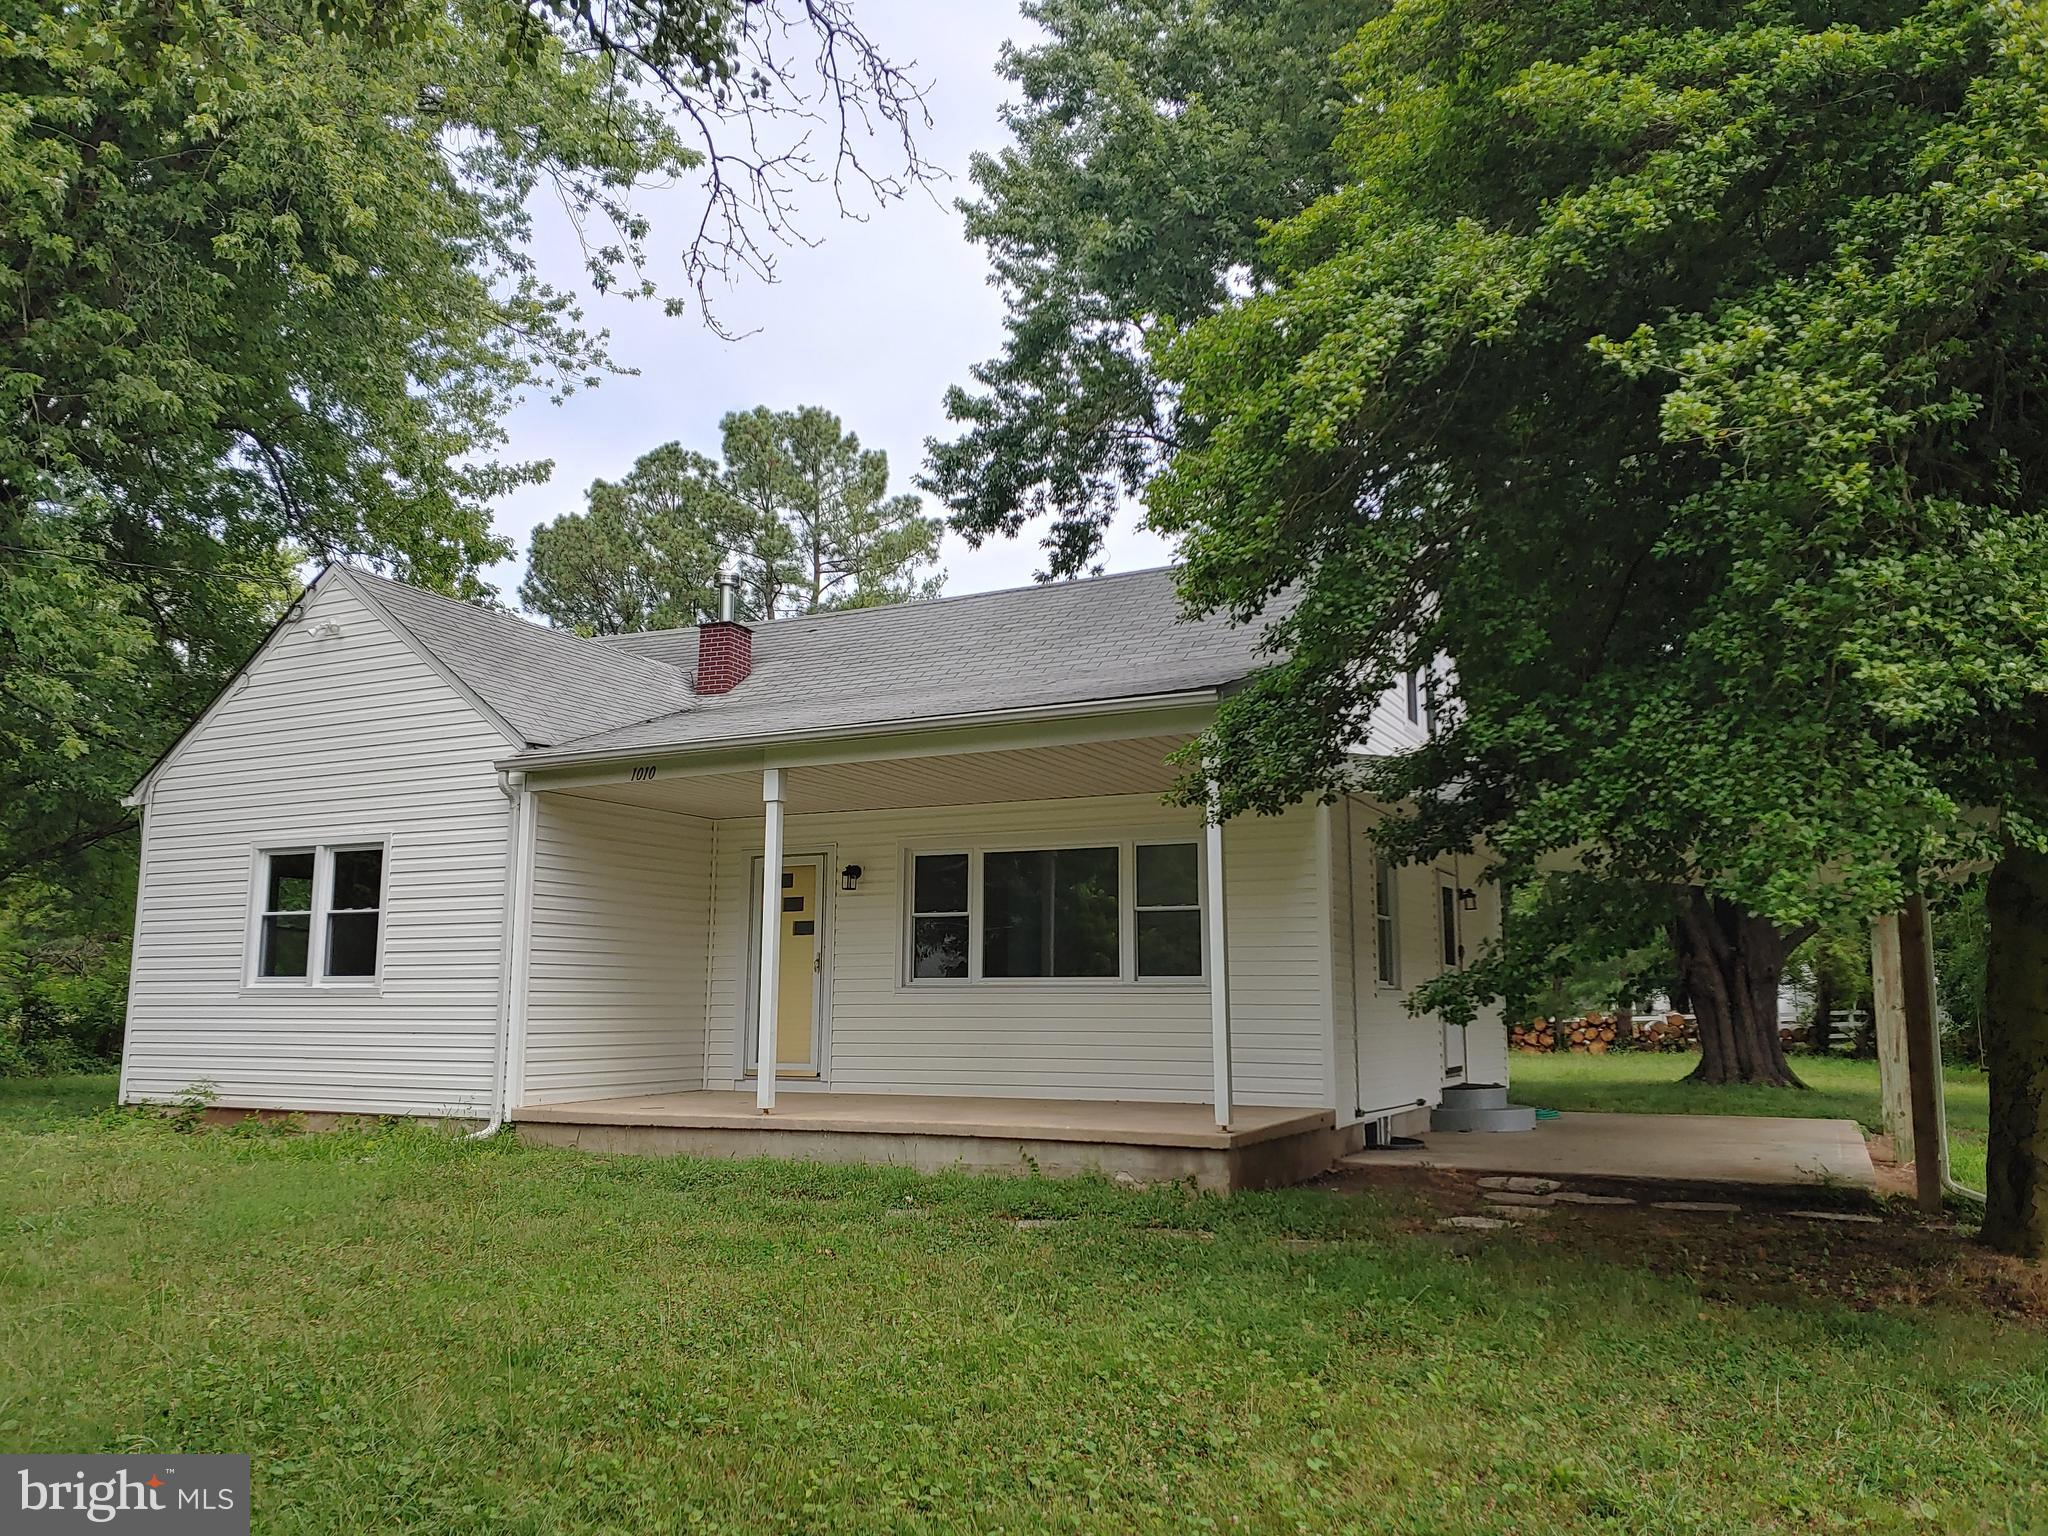 $100,000 LIST PRICE SUGGESTED OPENING BID AT AUCTION.** **NO PRE BID**.** AUCTION FRIDAY, AUGUST 7 @